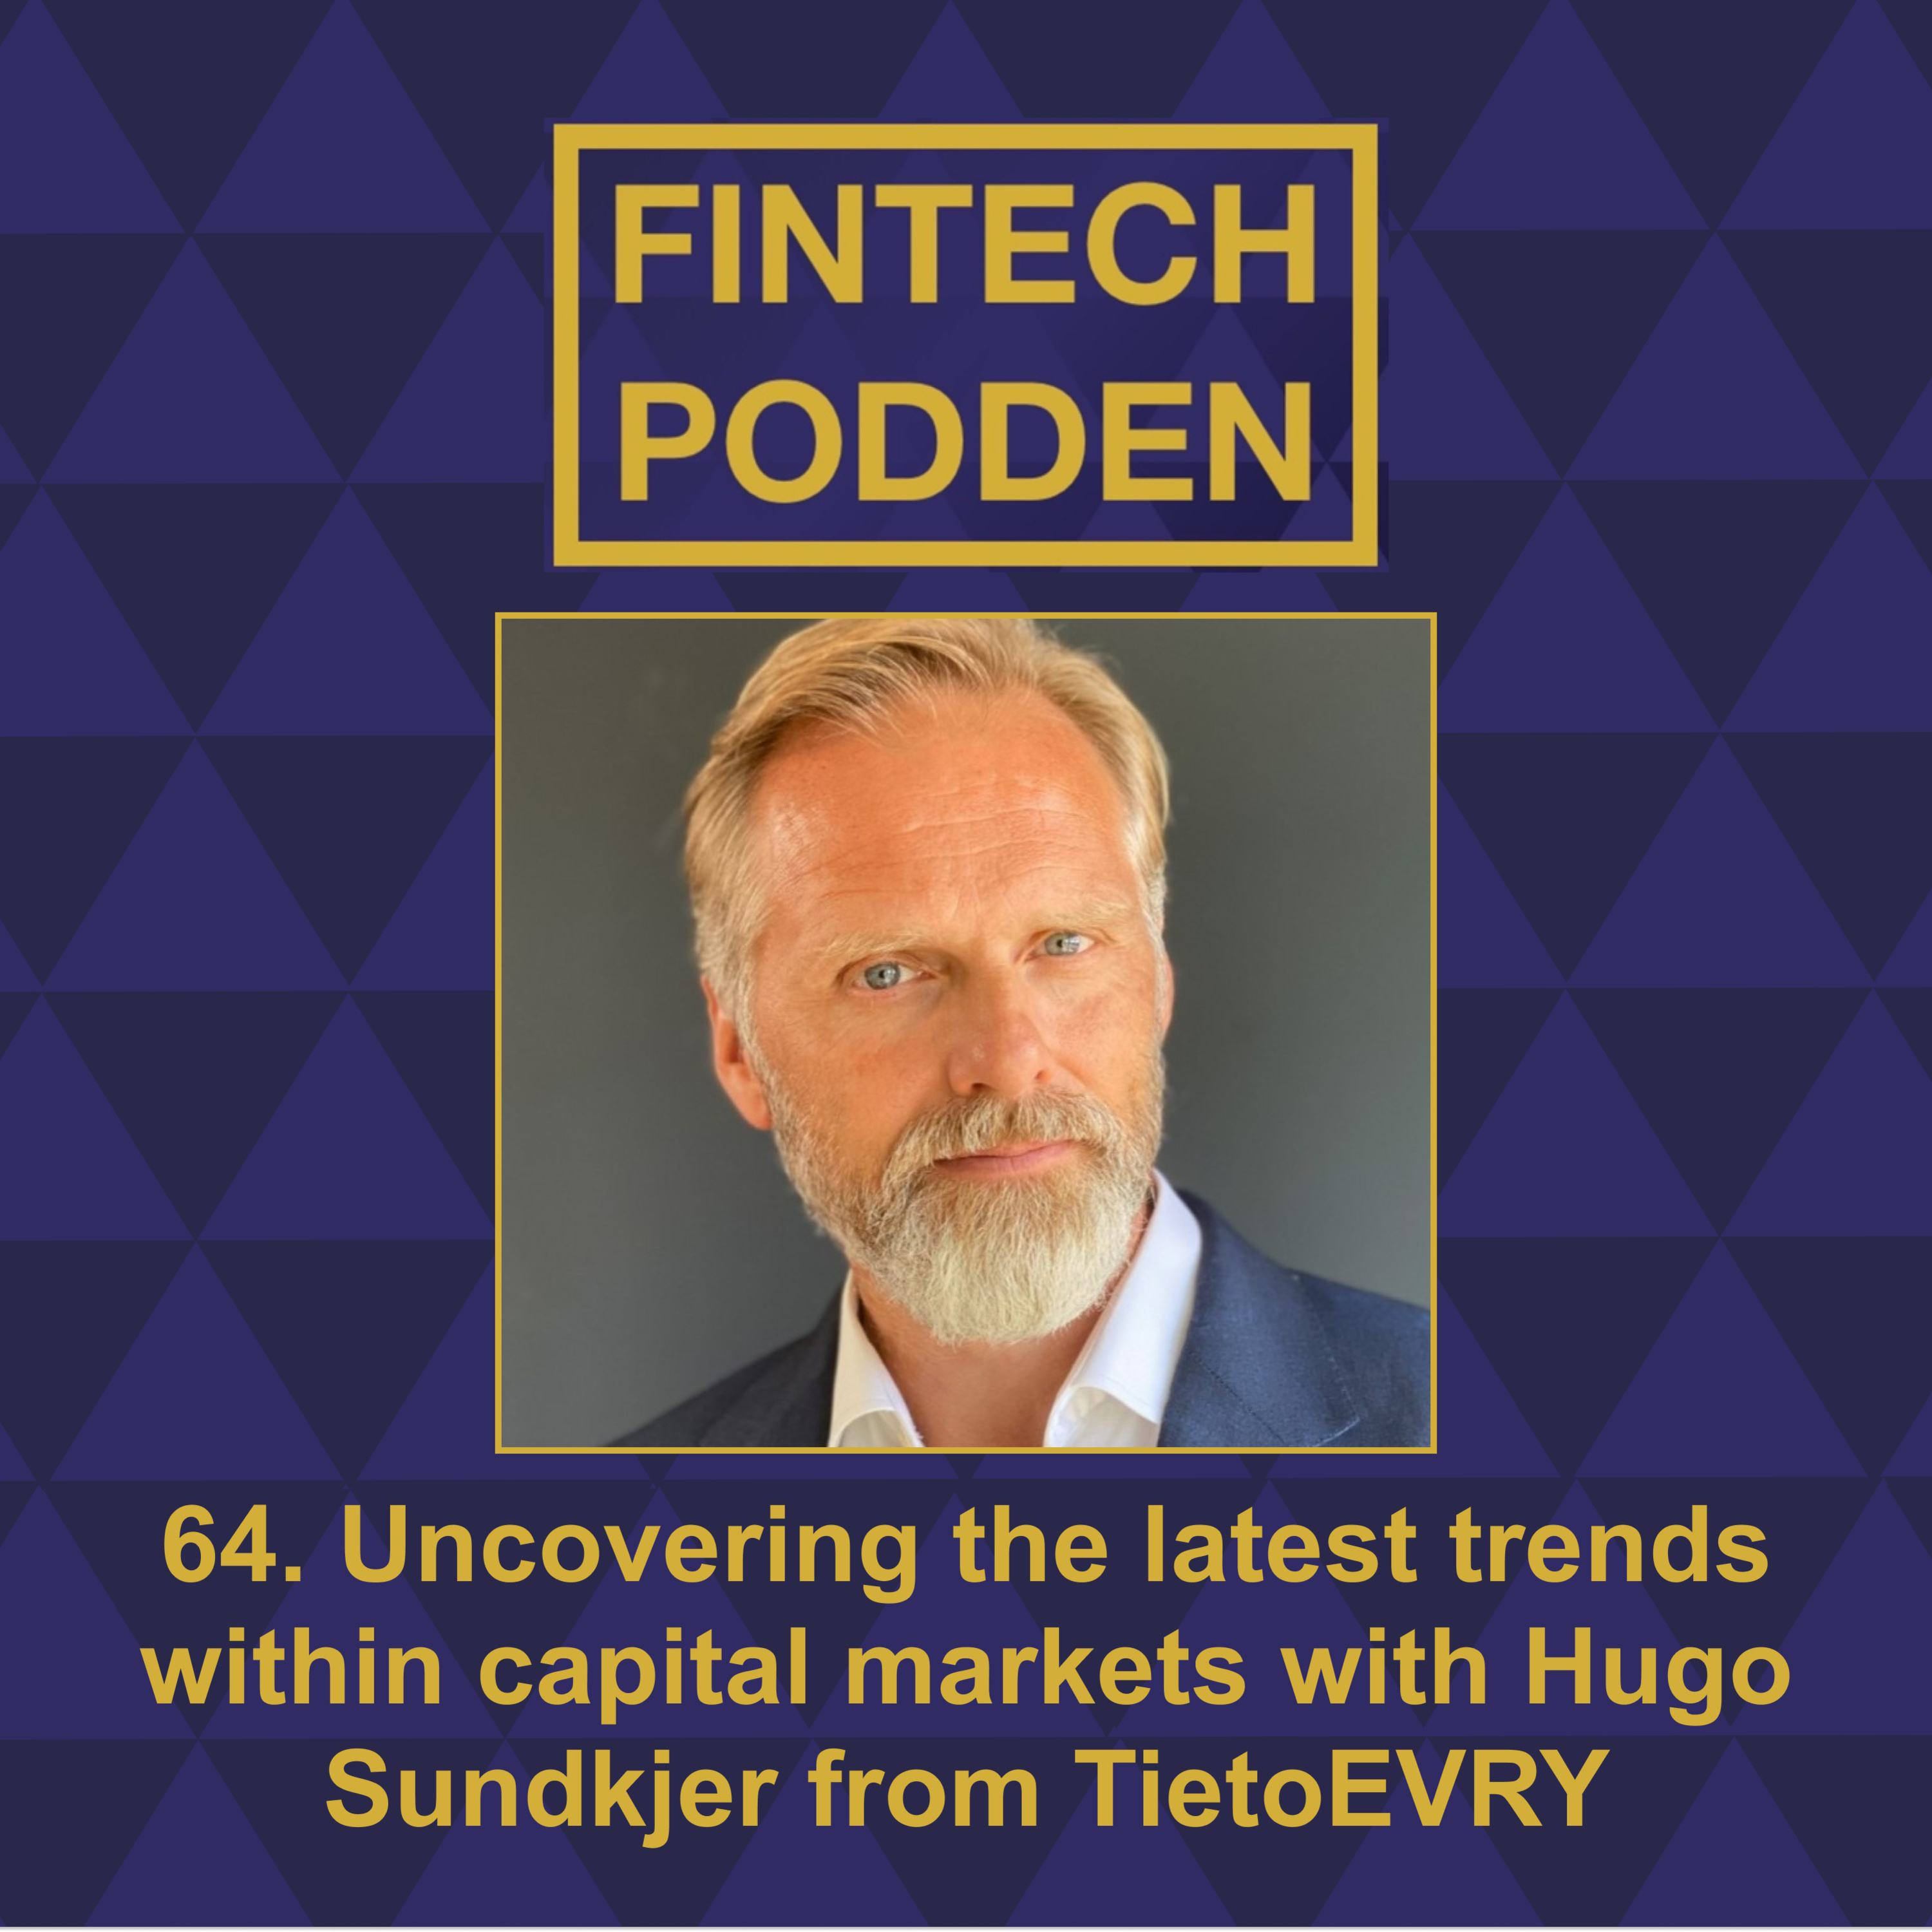 64. Uncovering the latest trends within capital markets with Hugo Sundkjer from TietoEVRY